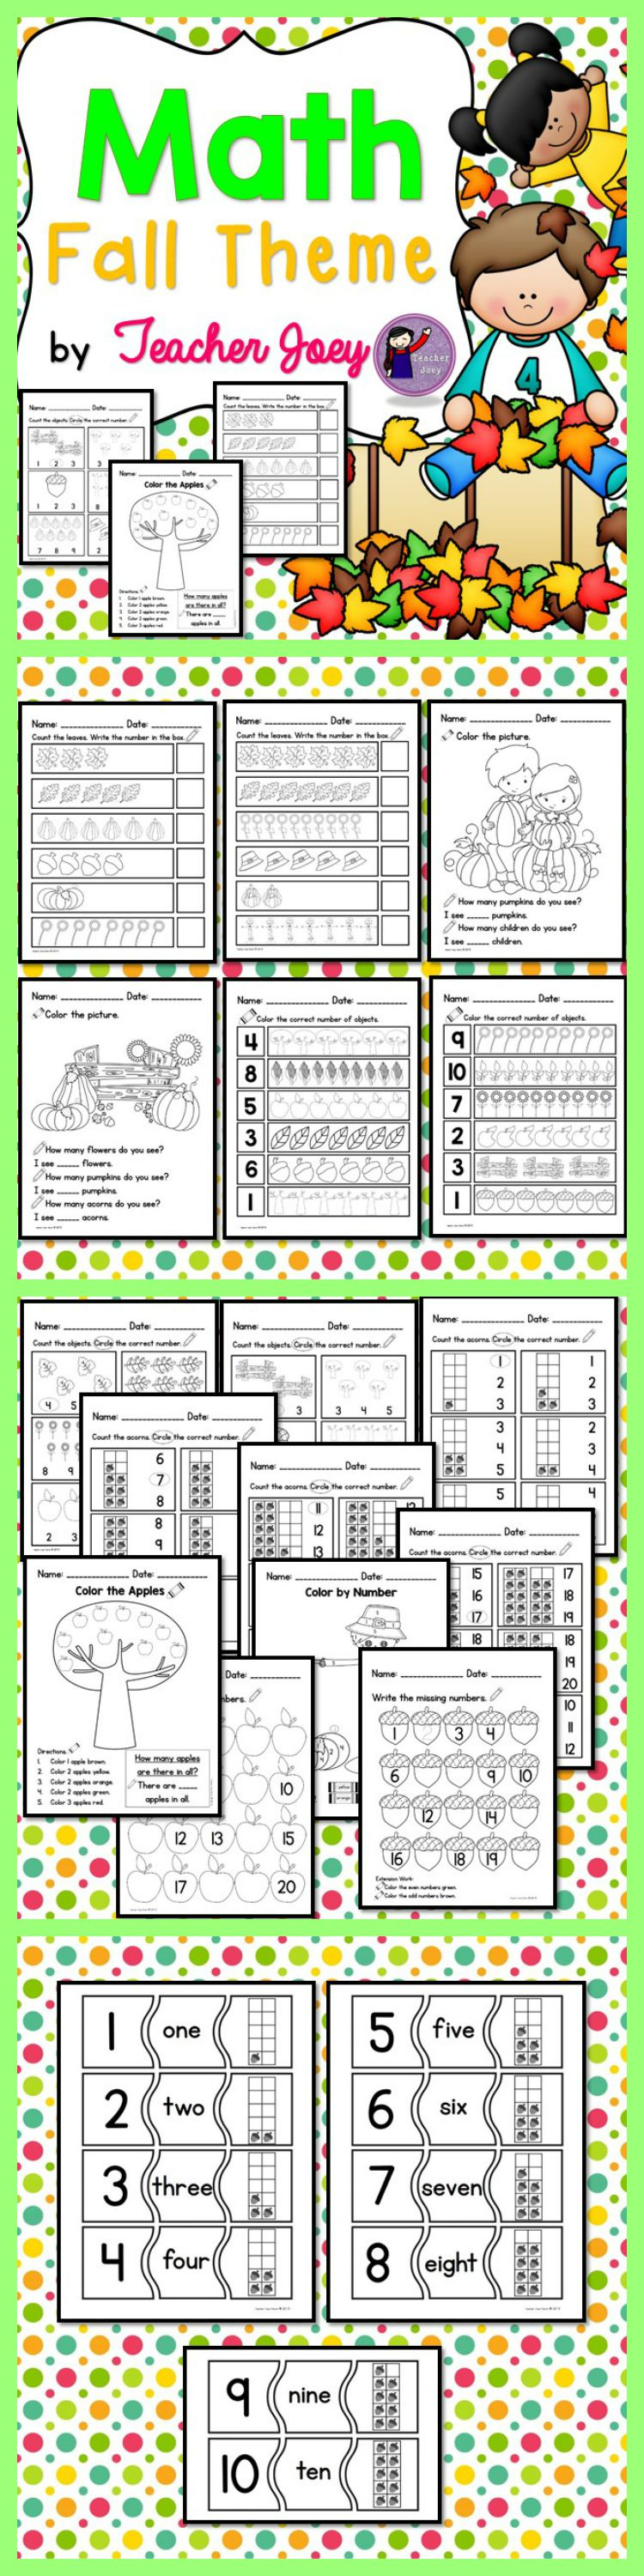 Fall Counting Worksheets | My TPT Products - Teacher Joey | Pinterest